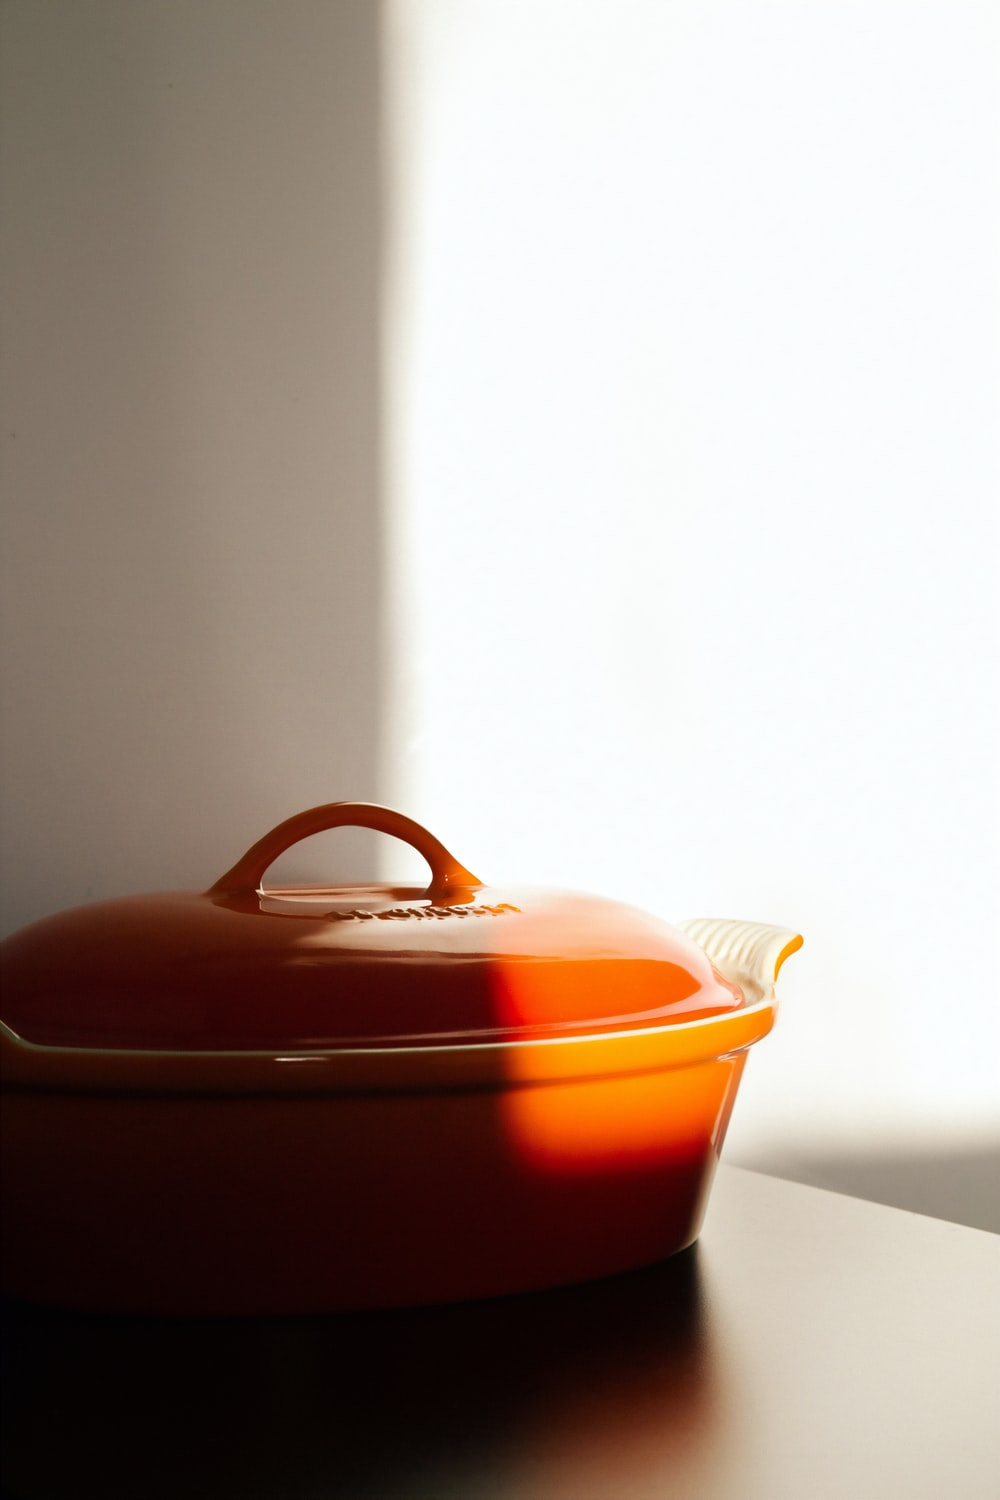 orange cooking pot on brown wooden surface